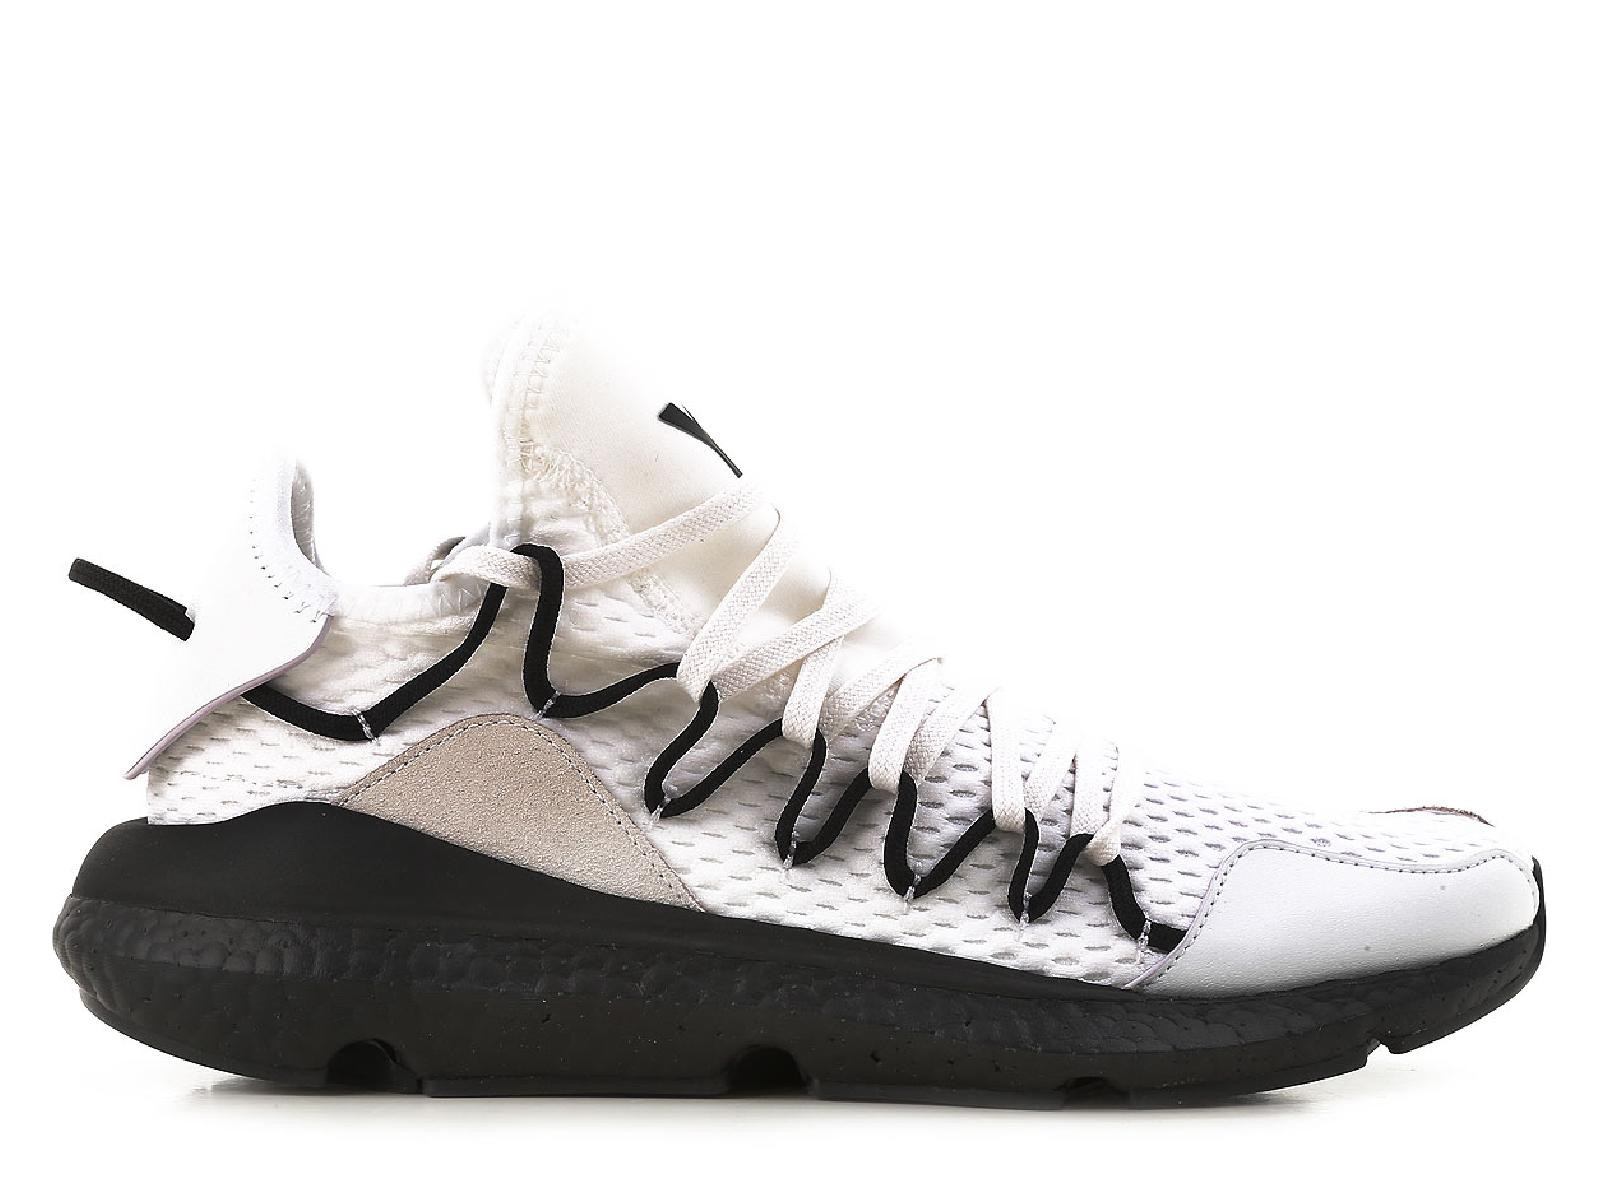 634161ed7 Y3 men s low top Kusari white lace up sneakers athletic shoes